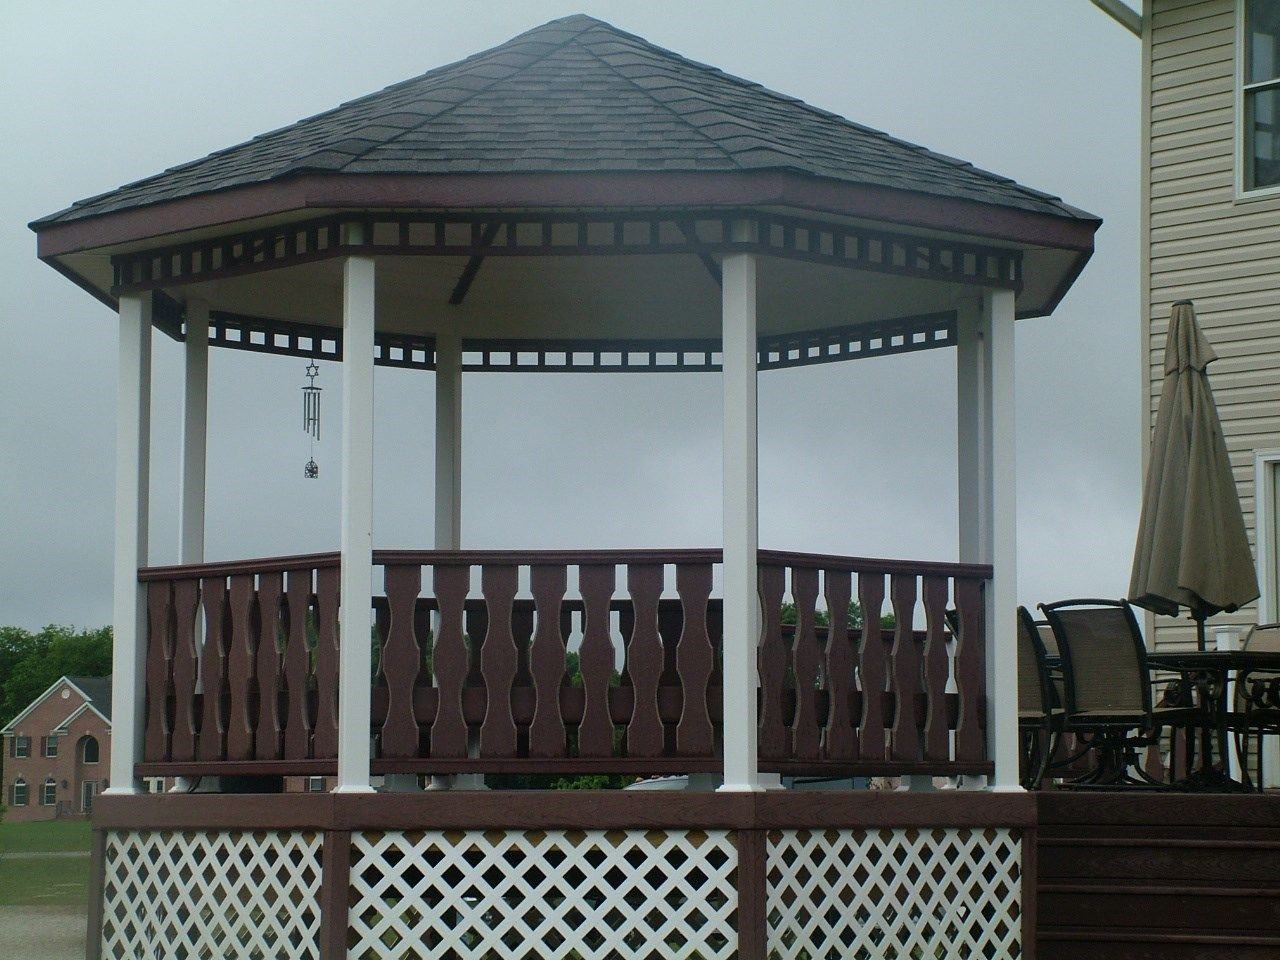 Custom Gazebo deck in Millstone NJ - Picture 3426